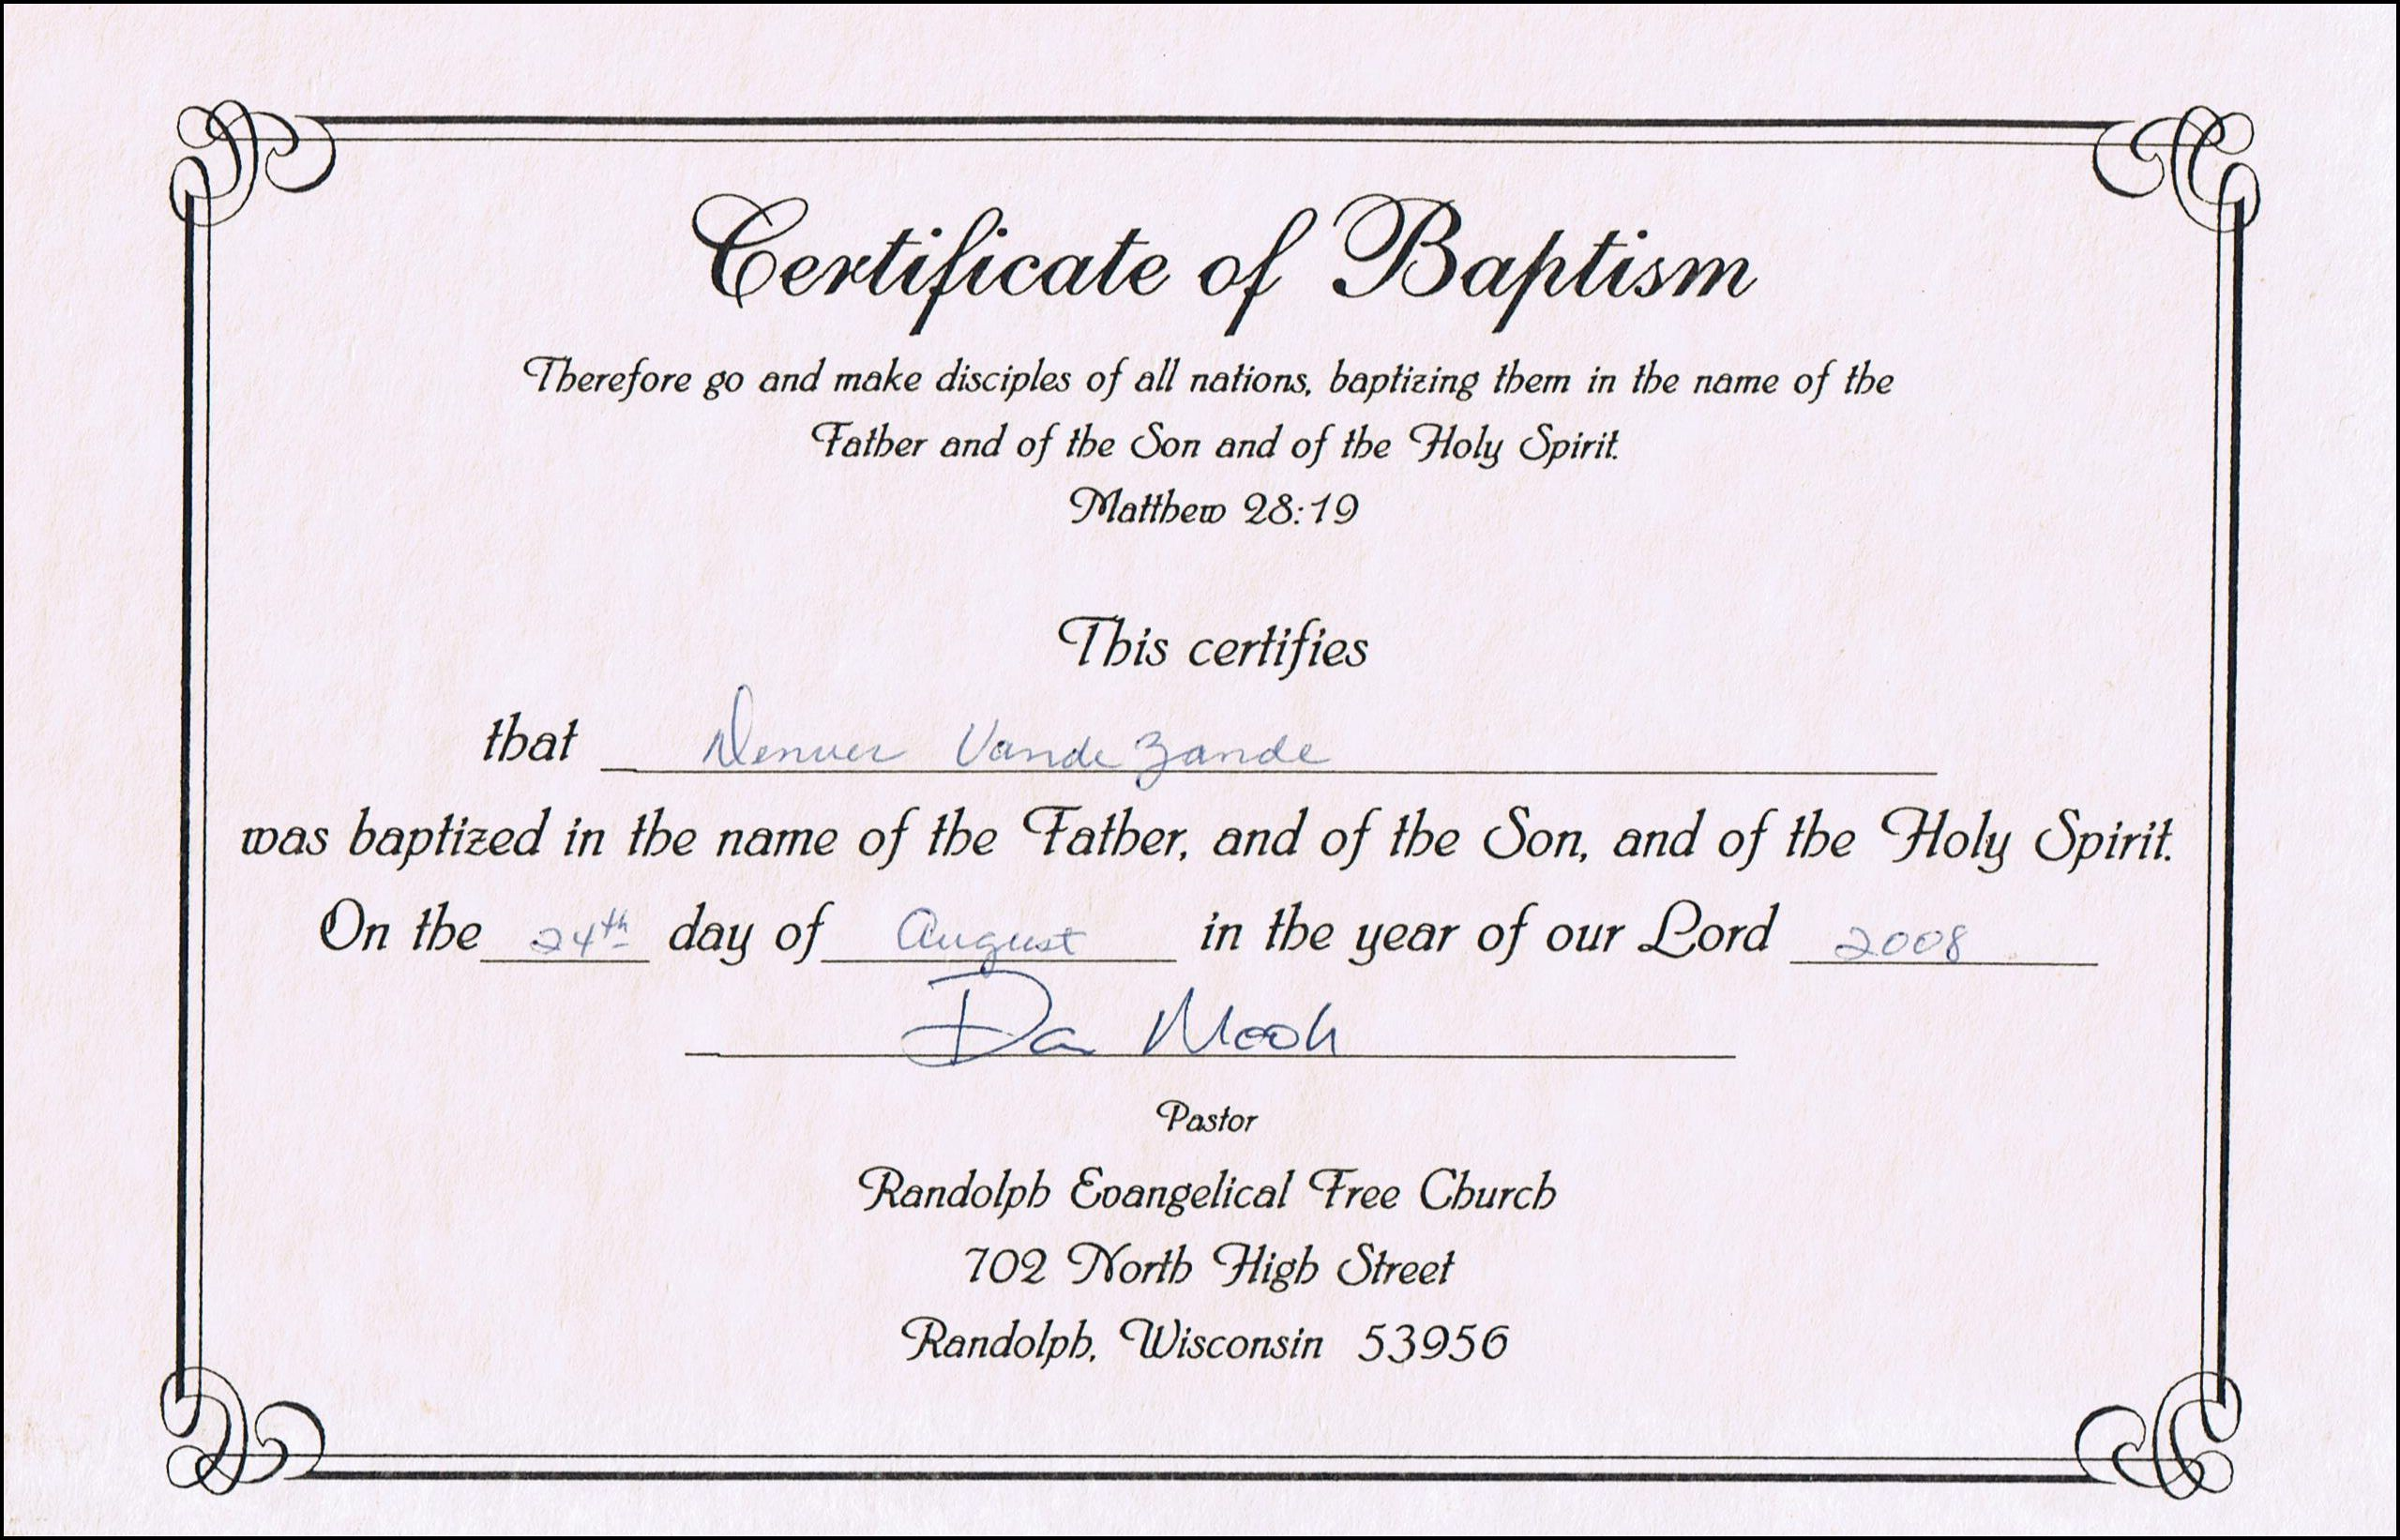 Baptism certificate templates for word aspects of beauty for Free water baptism certificate template